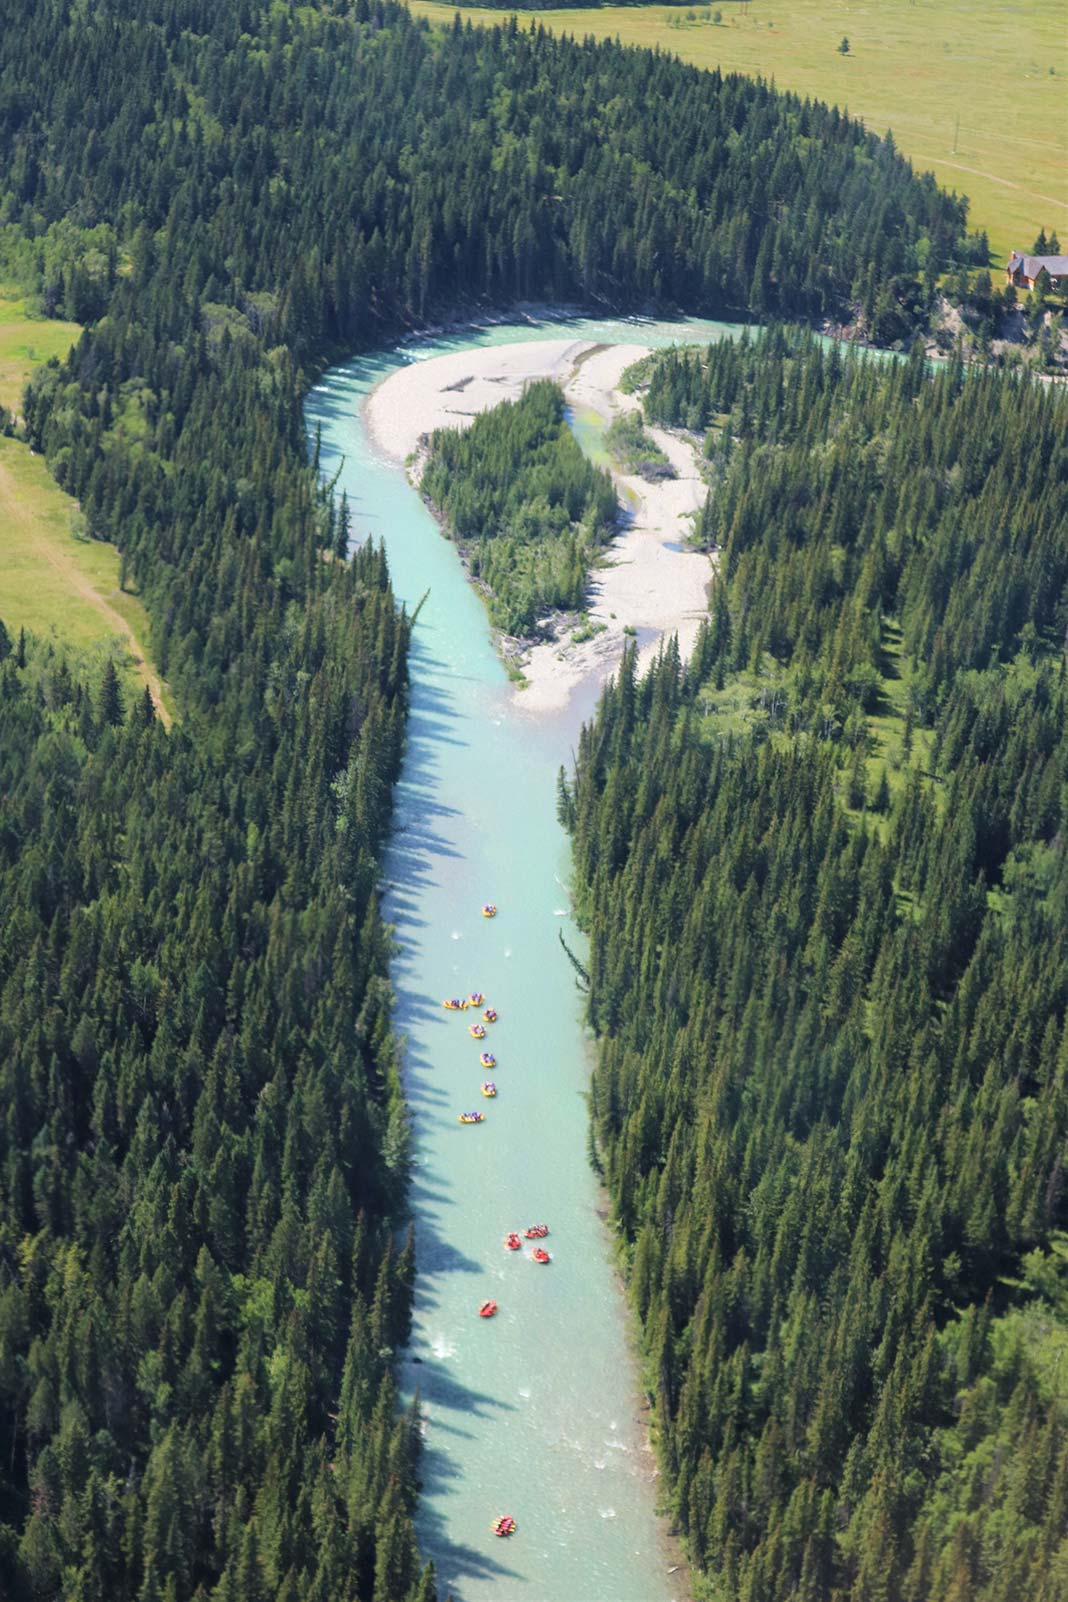 View of Bow River from above with rafts